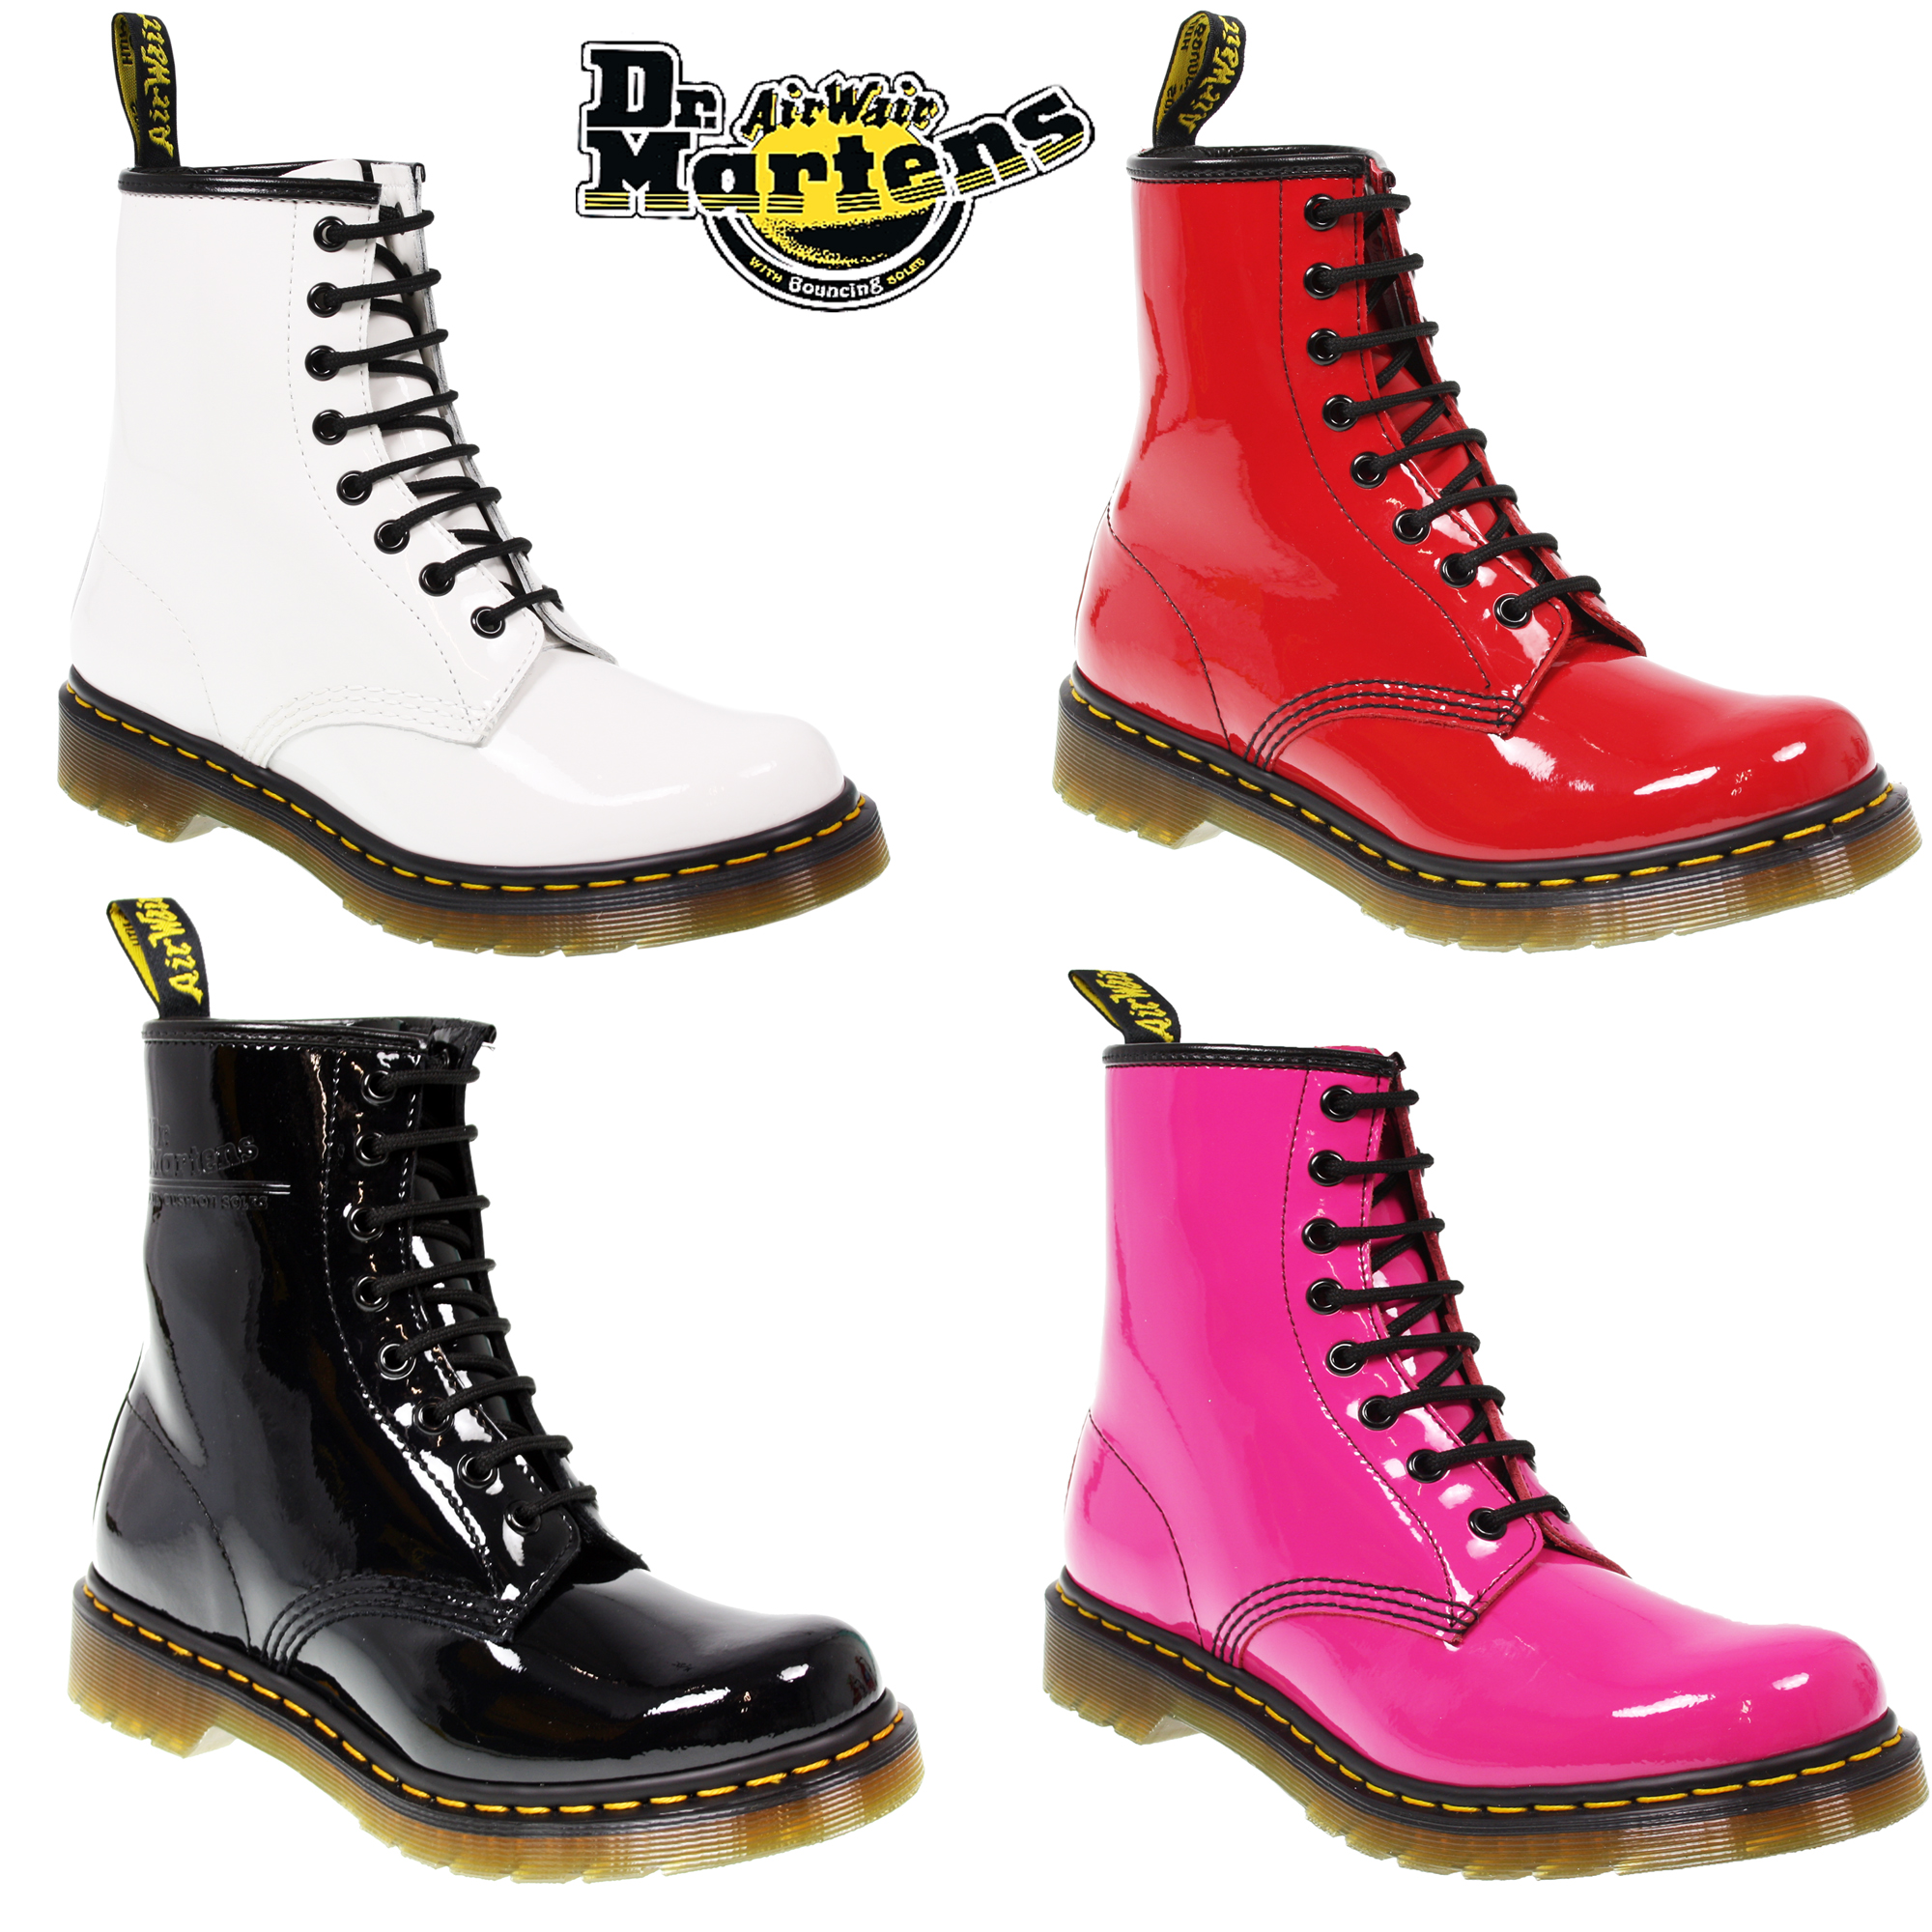 Awesome View All Boots View All Dr Martens Boots View All Dr Martens Pewter